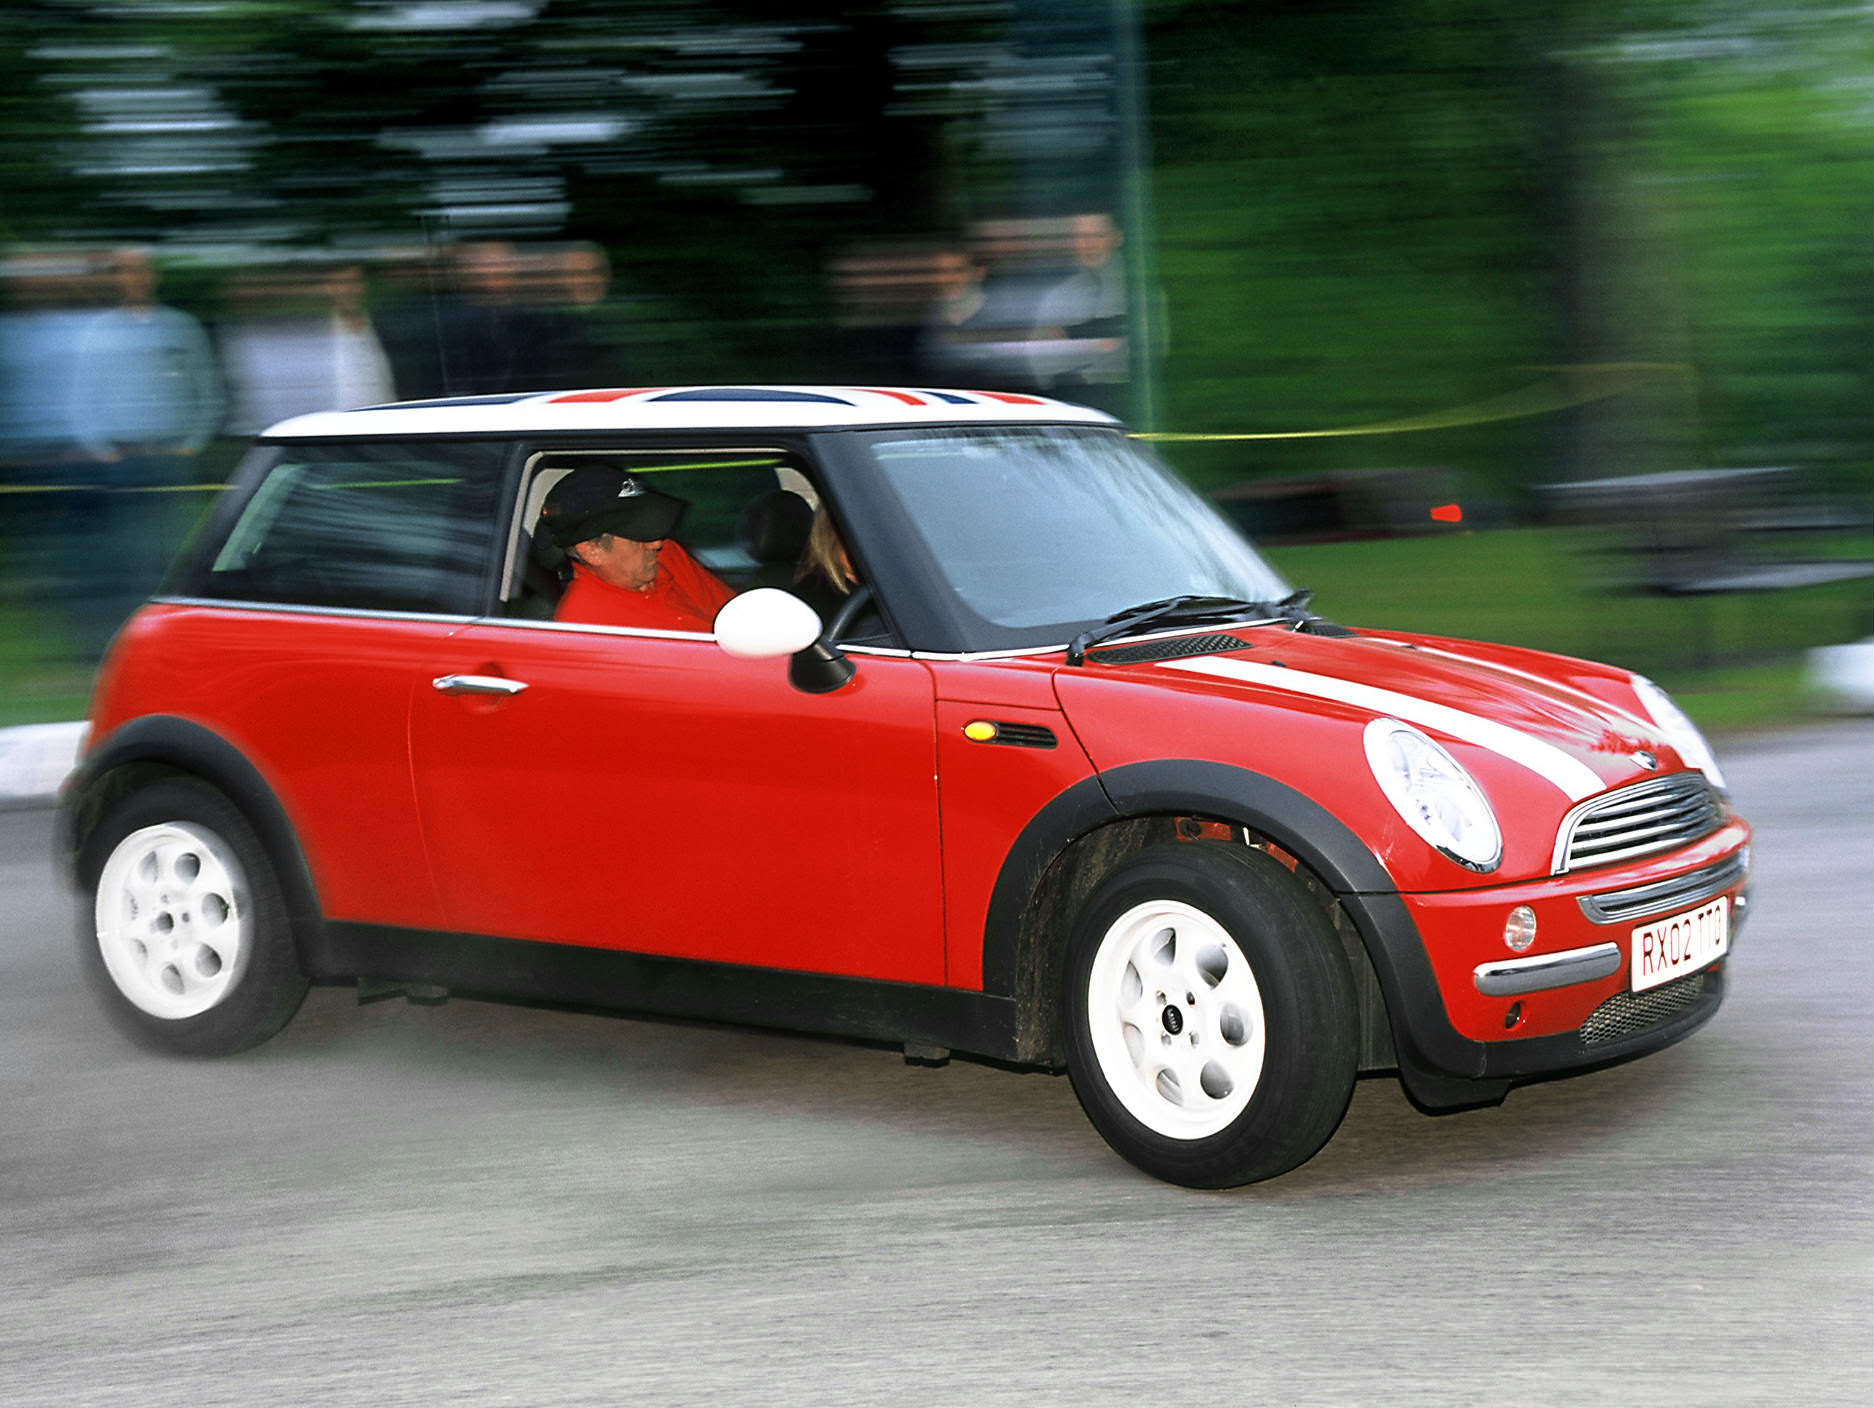 image of a red and white mini cooper car exterior